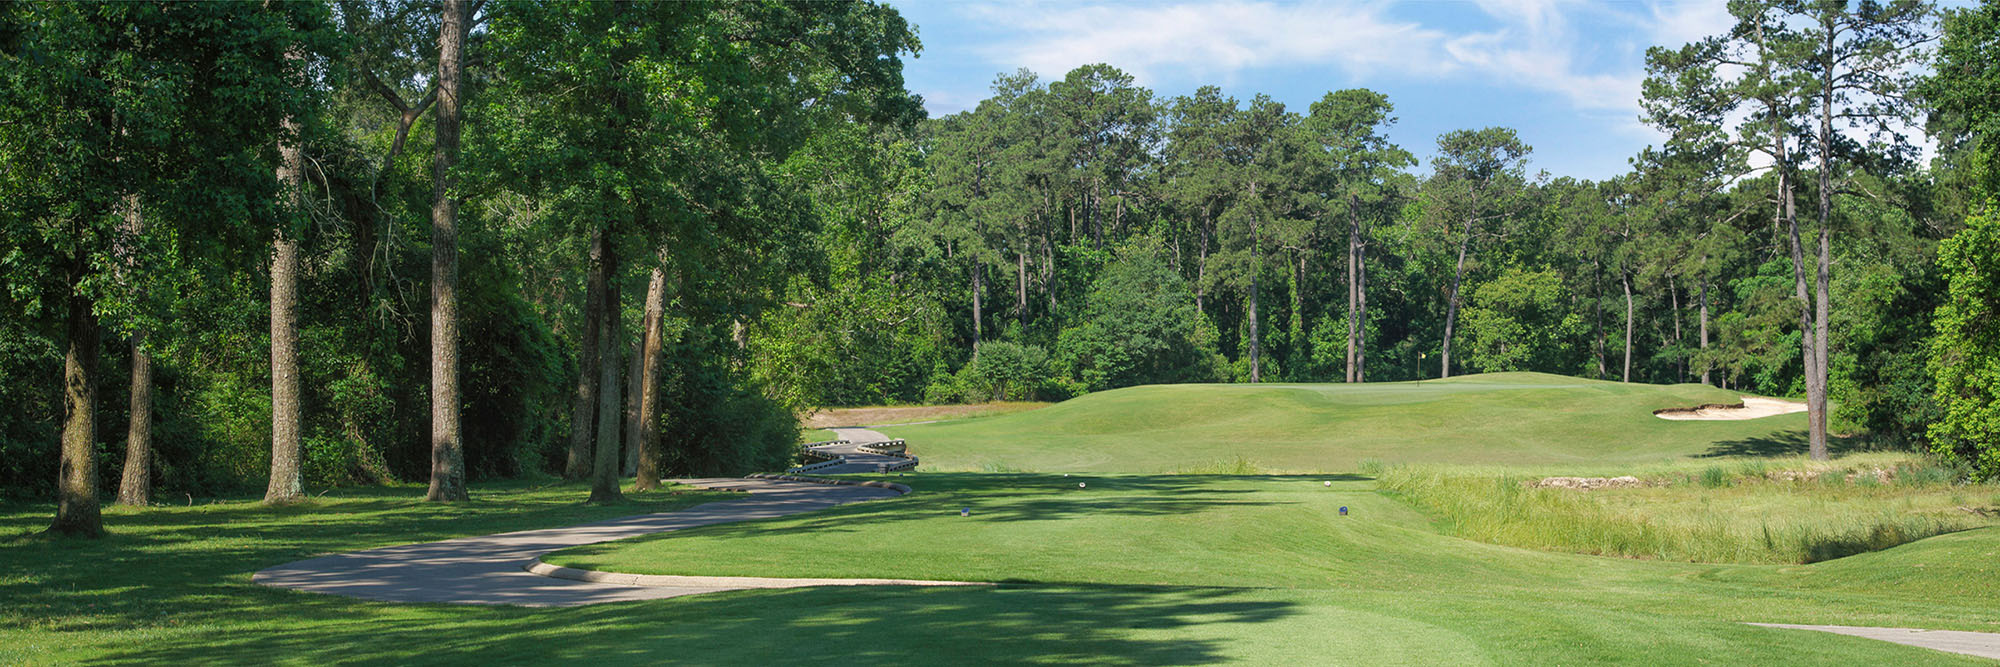 Golf Course Image - Woodlands-Panther Trail Course No. 7